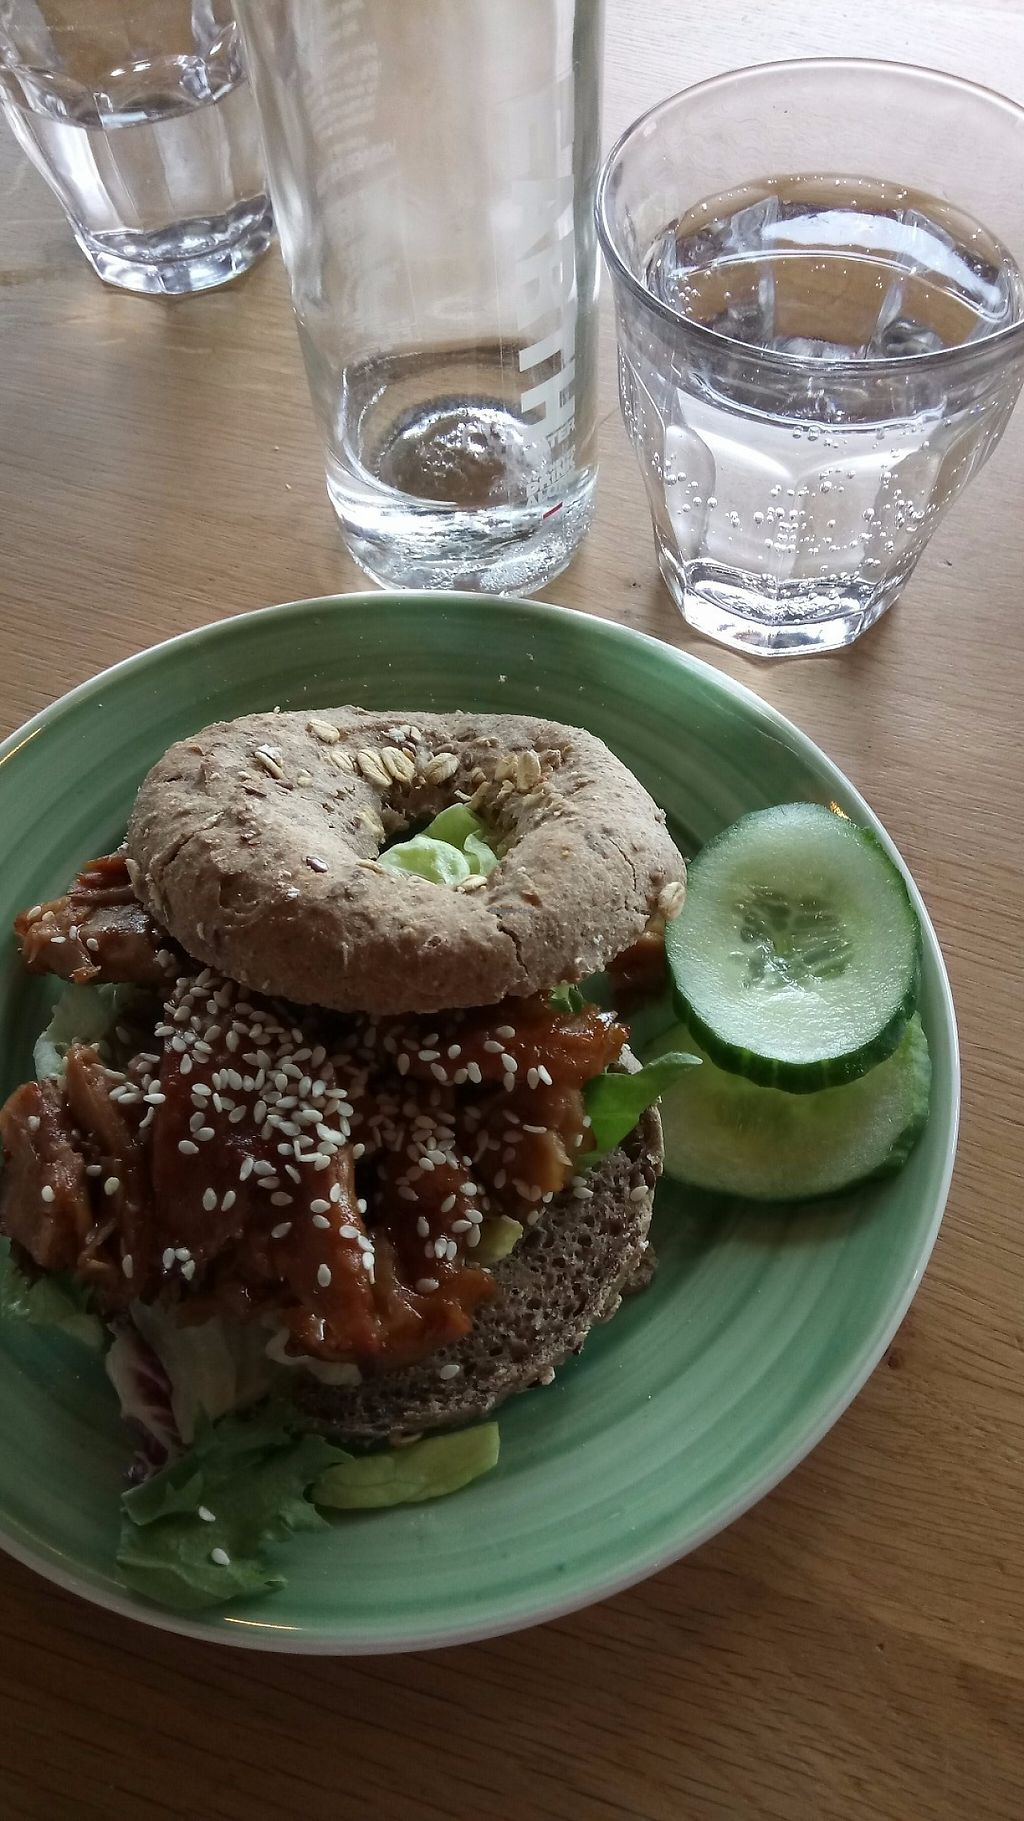 """Photo of Bagels & Beans - Vivaldistraat  by <a href=""""/members/profile/Shama2004"""">Shama2004</a> <br/>Veggie-chiken with coriander, teriyaki sauce, sesami seeds and lettuce <br/> May 29, 2017  - <a href='/contact/abuse/image/64864/263846'>Report</a>"""